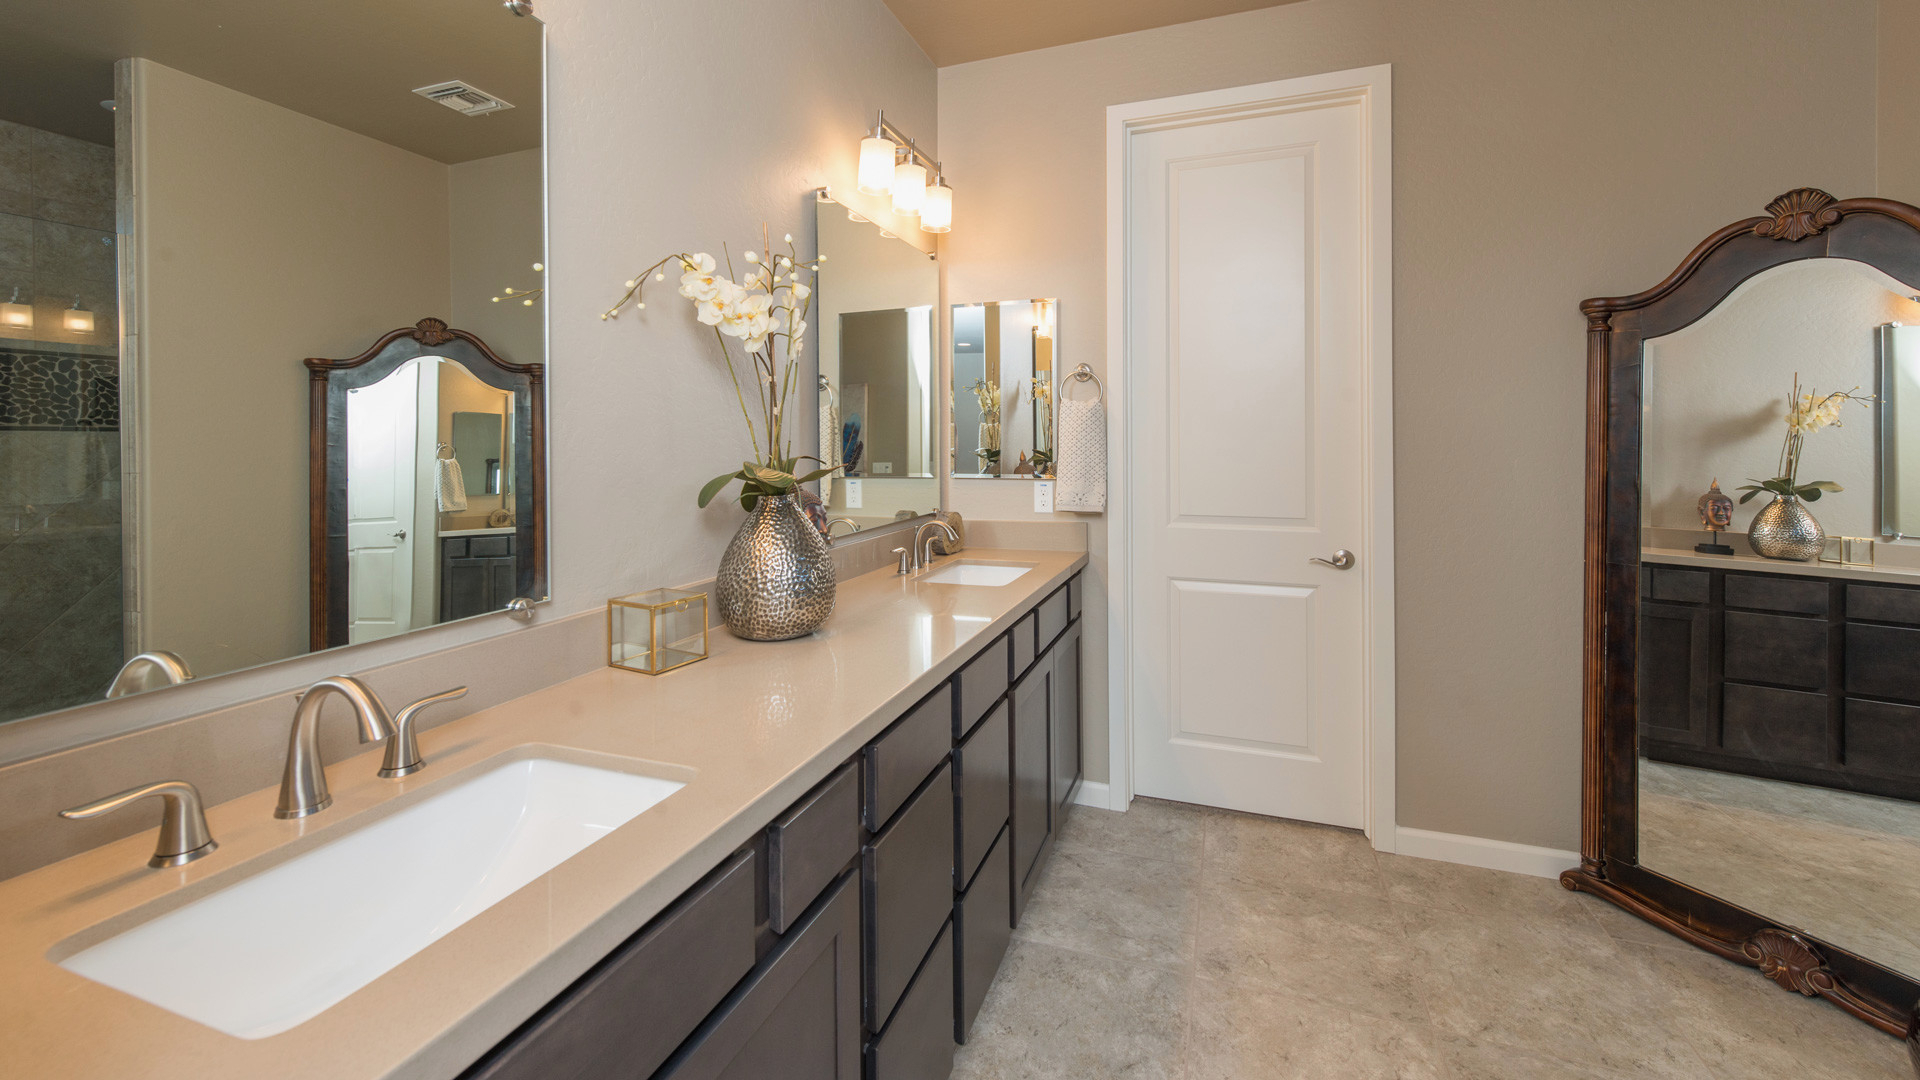 55 Inspirational Of Floor And Decor Highlands Ranch Pic With Regard To Highlands Ranch The Templeton Wall Decor (View 6 of 30)